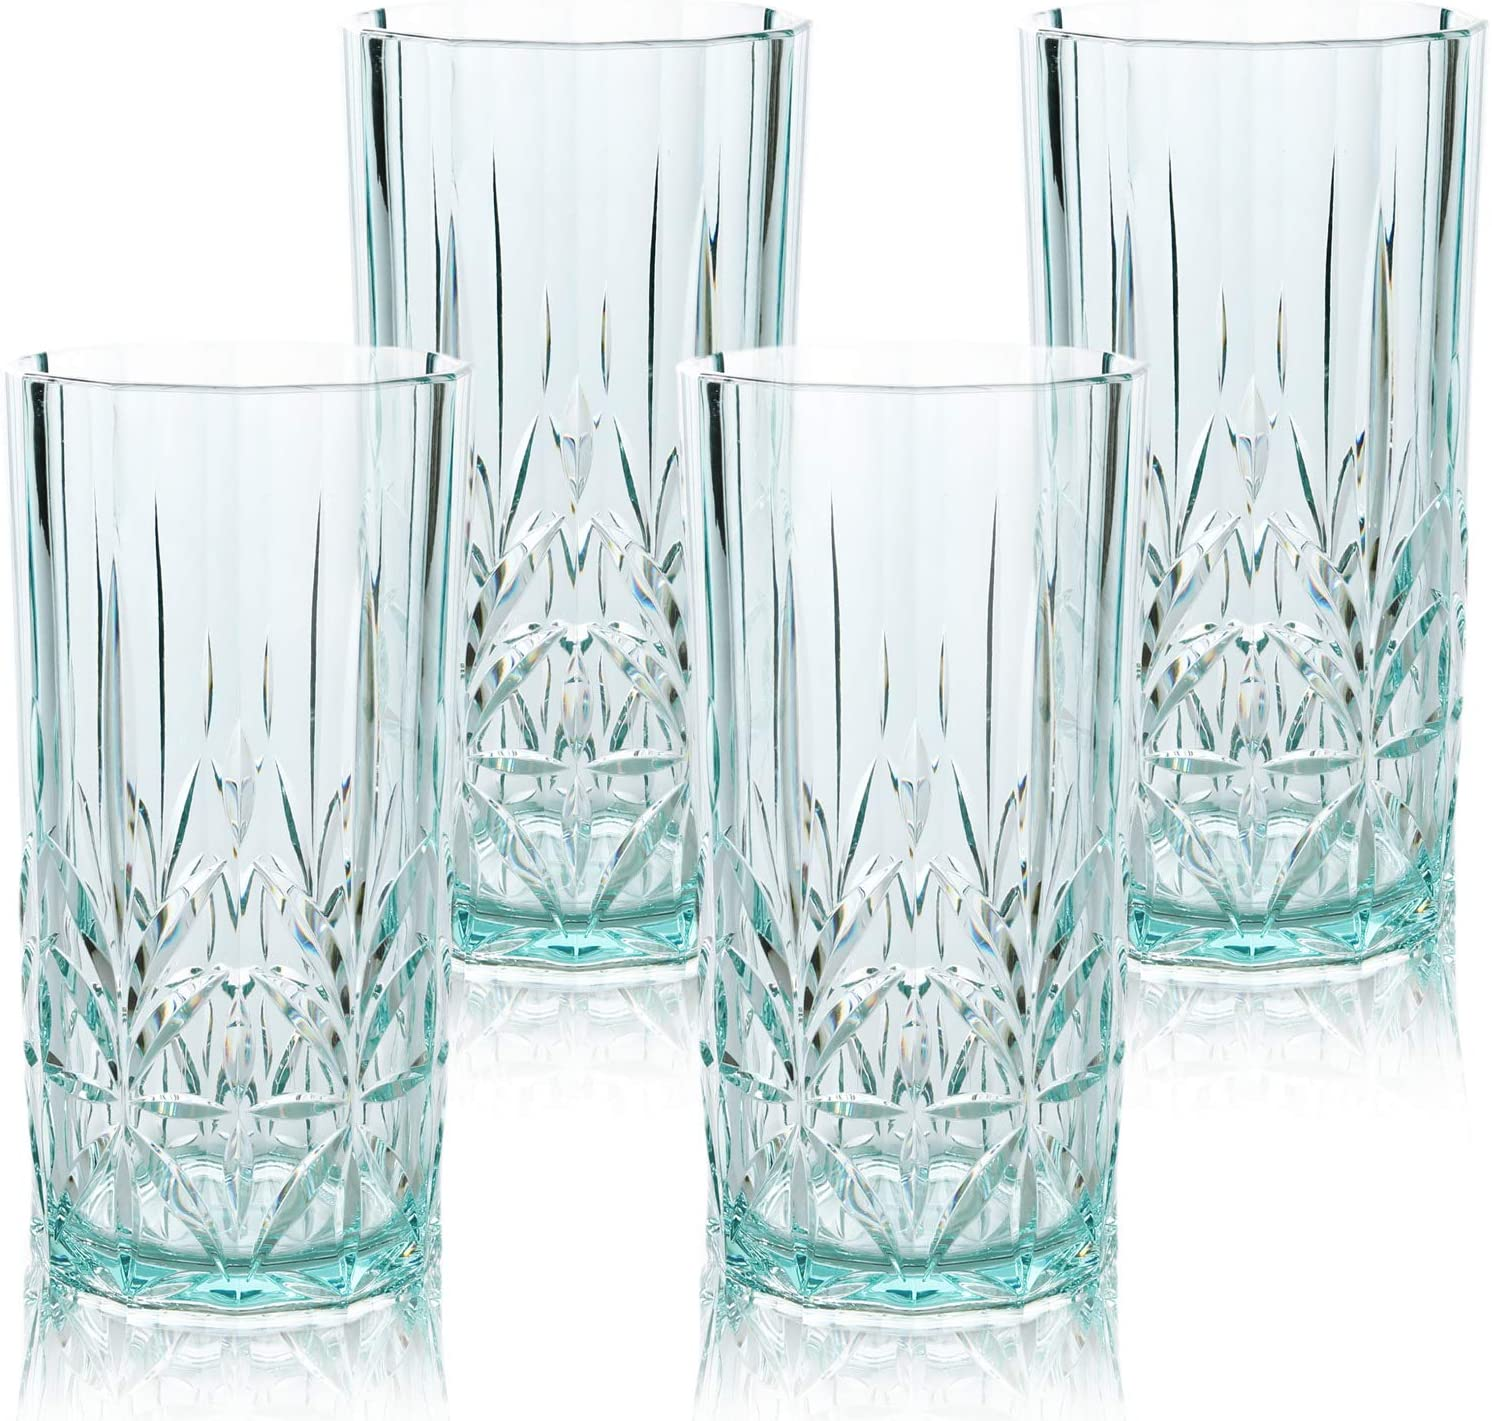 Myrtle Beach Tall Tumbler Teal, 18oz -set of 4, Shatterproof Tritan Drinking Glasses, Dishwasher safe Plastic Tumblers - Unbreakable Glassware for Indoor and Outdoor Use - Reusable Drinkware